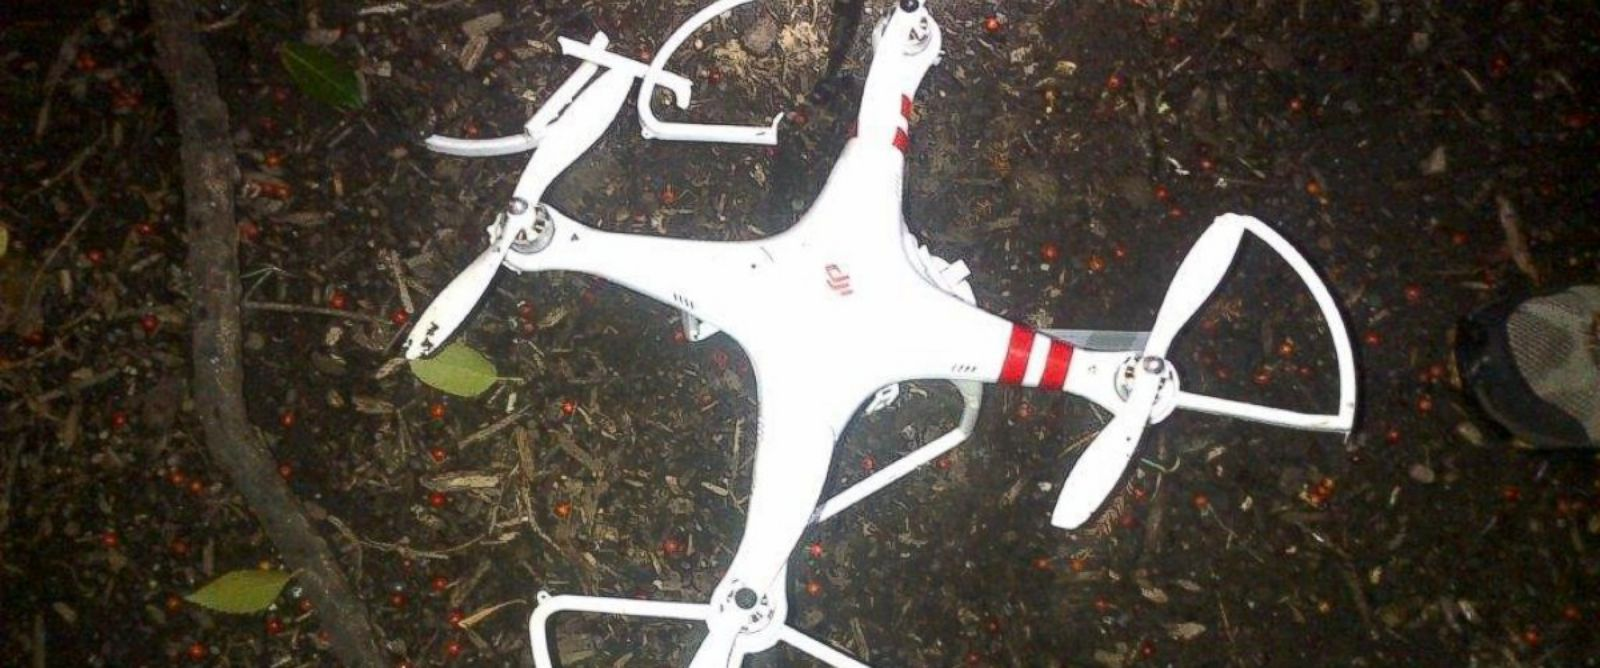 PHOTO: A small drone was found on the White House lawn last night.